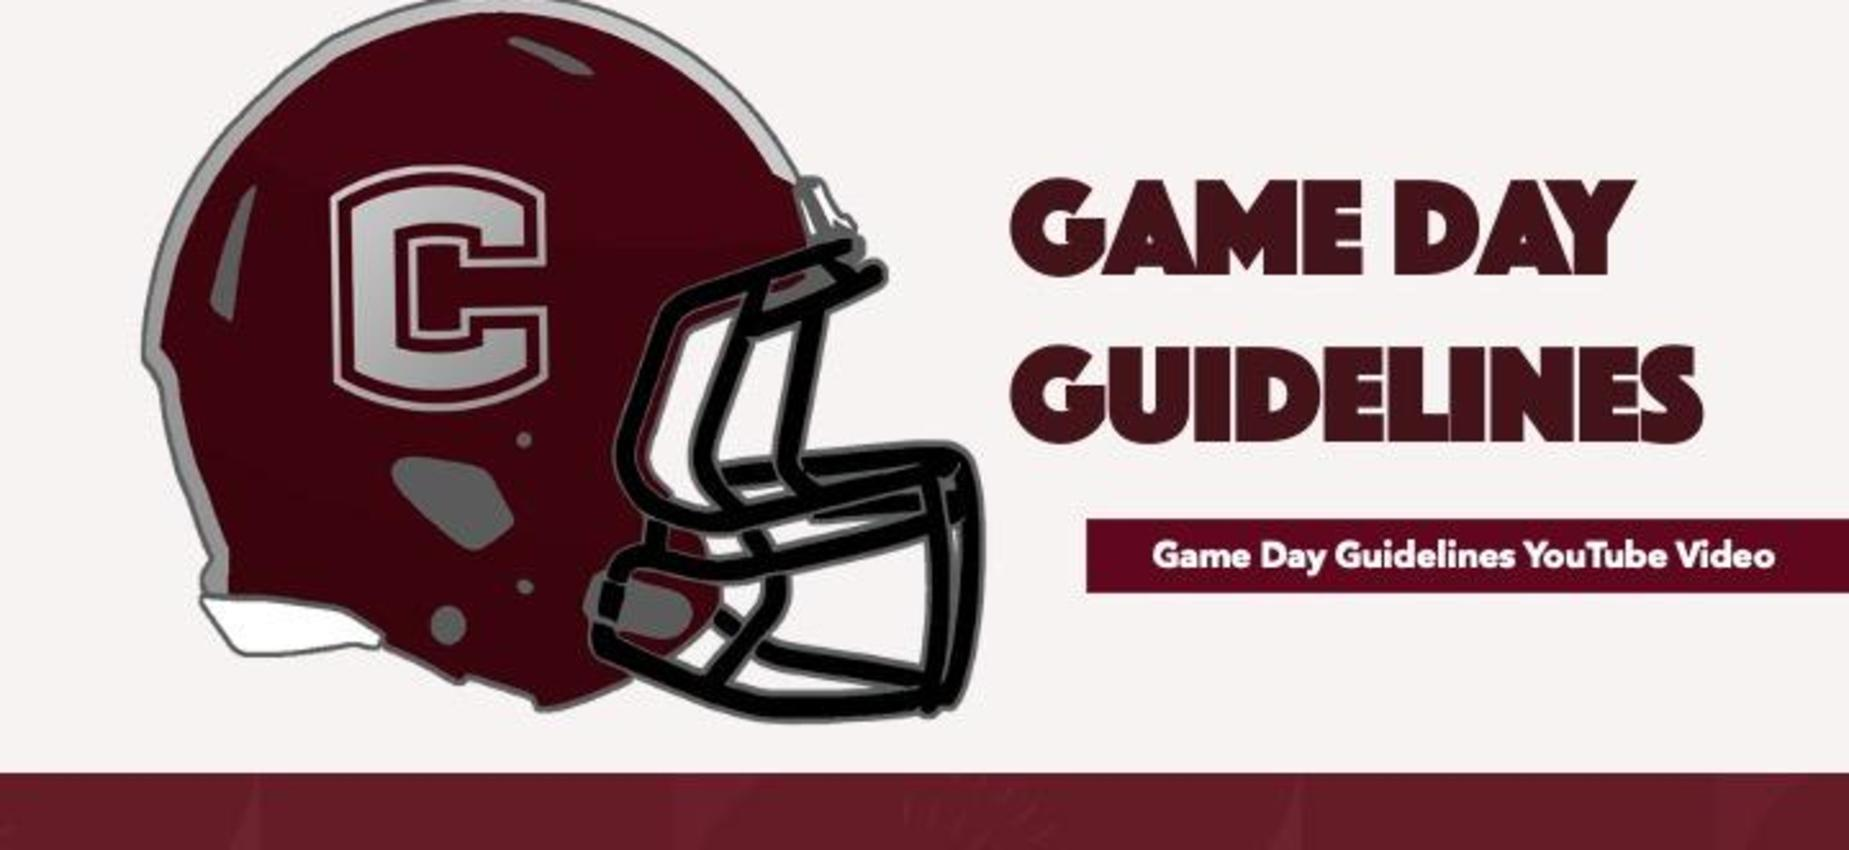 Game Day Guidelines